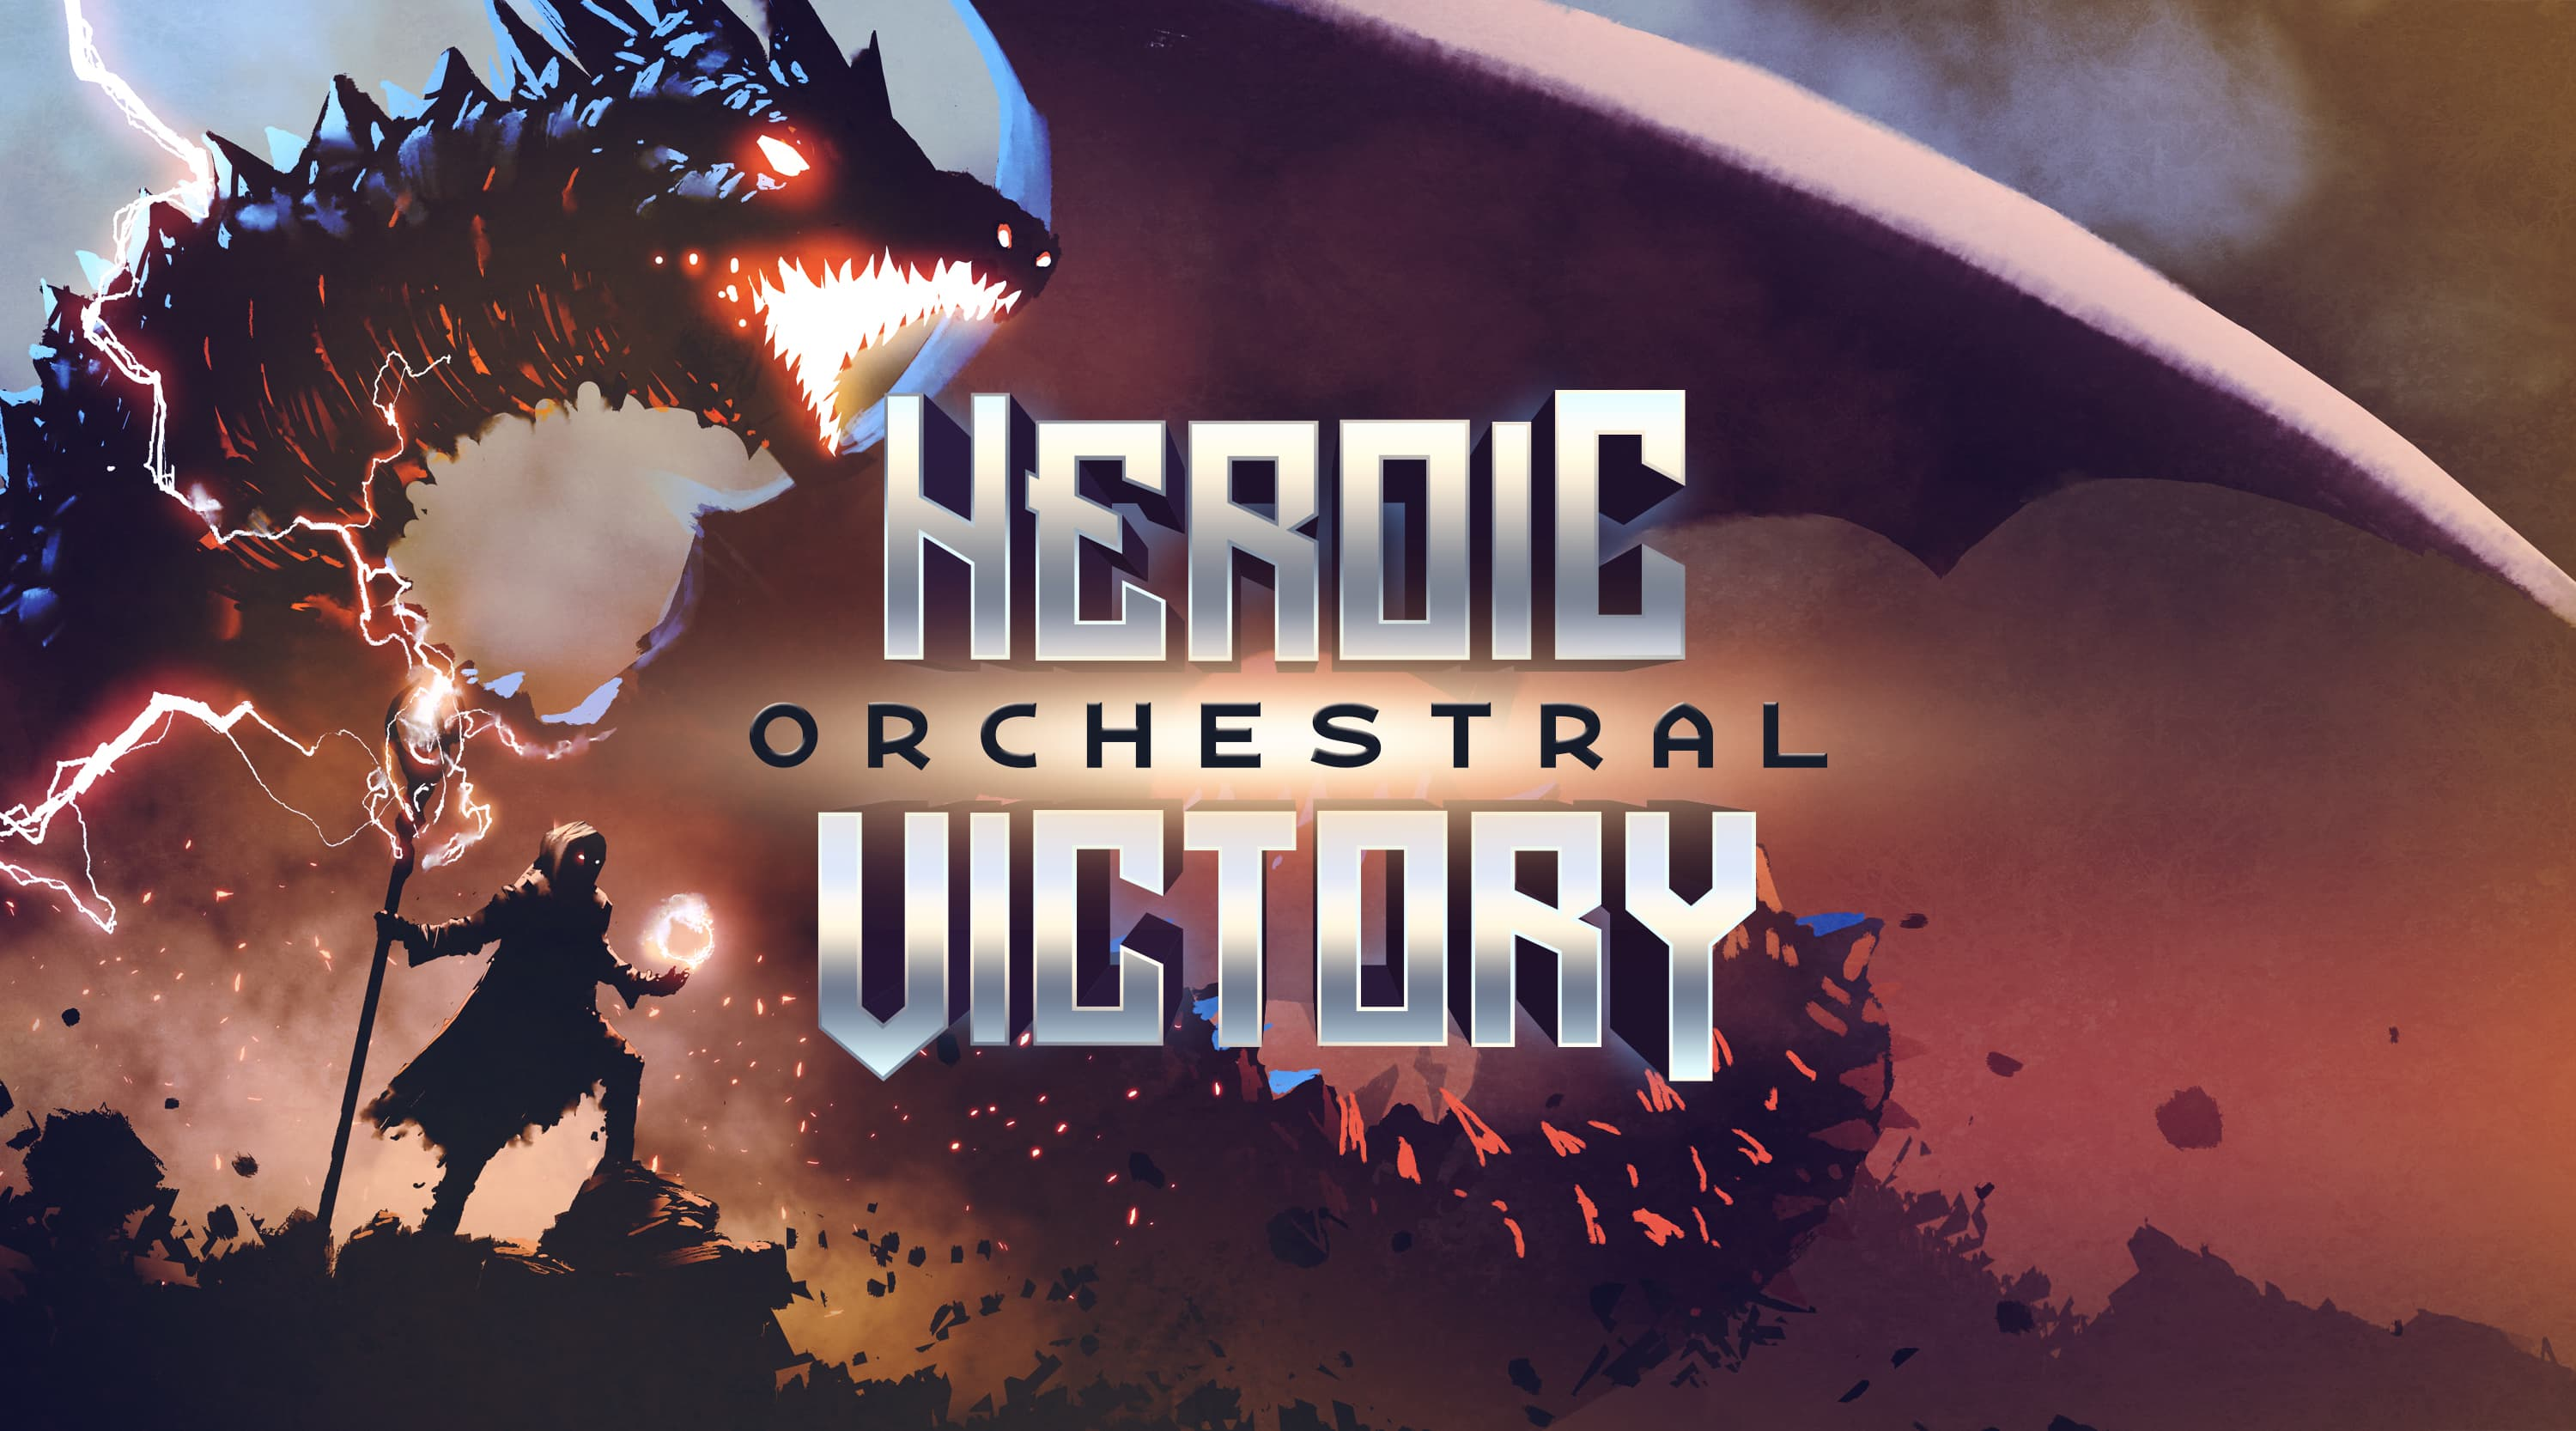 Heroic Orchestral Victory